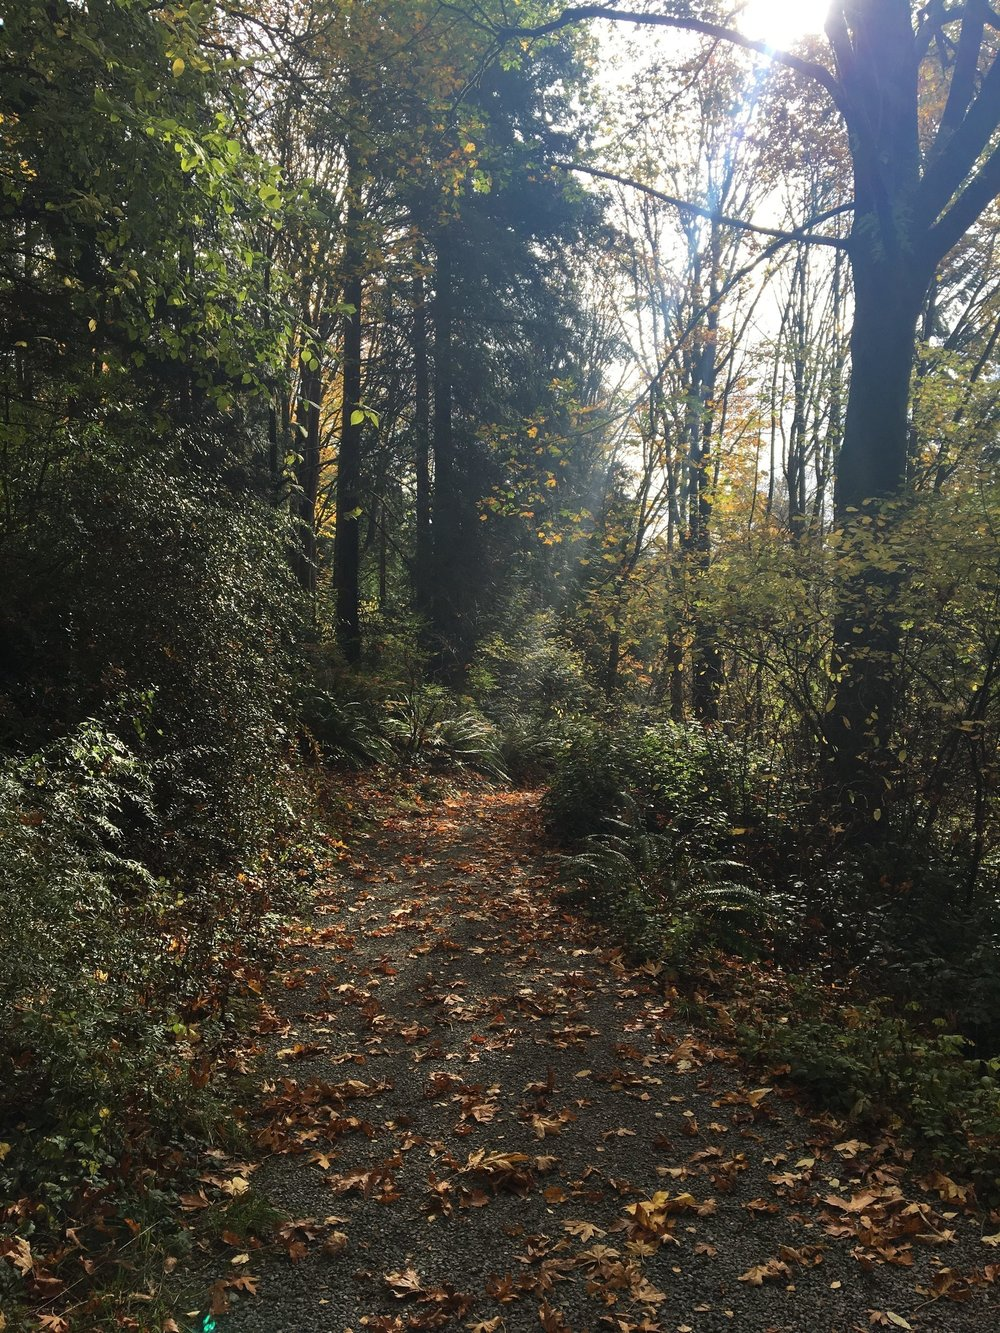 On the one dry day we had in Seattle, we visited the  Washington Park Arboretum . Given that it was a weekday, it was nice and quiet. Absolutely beautiful.